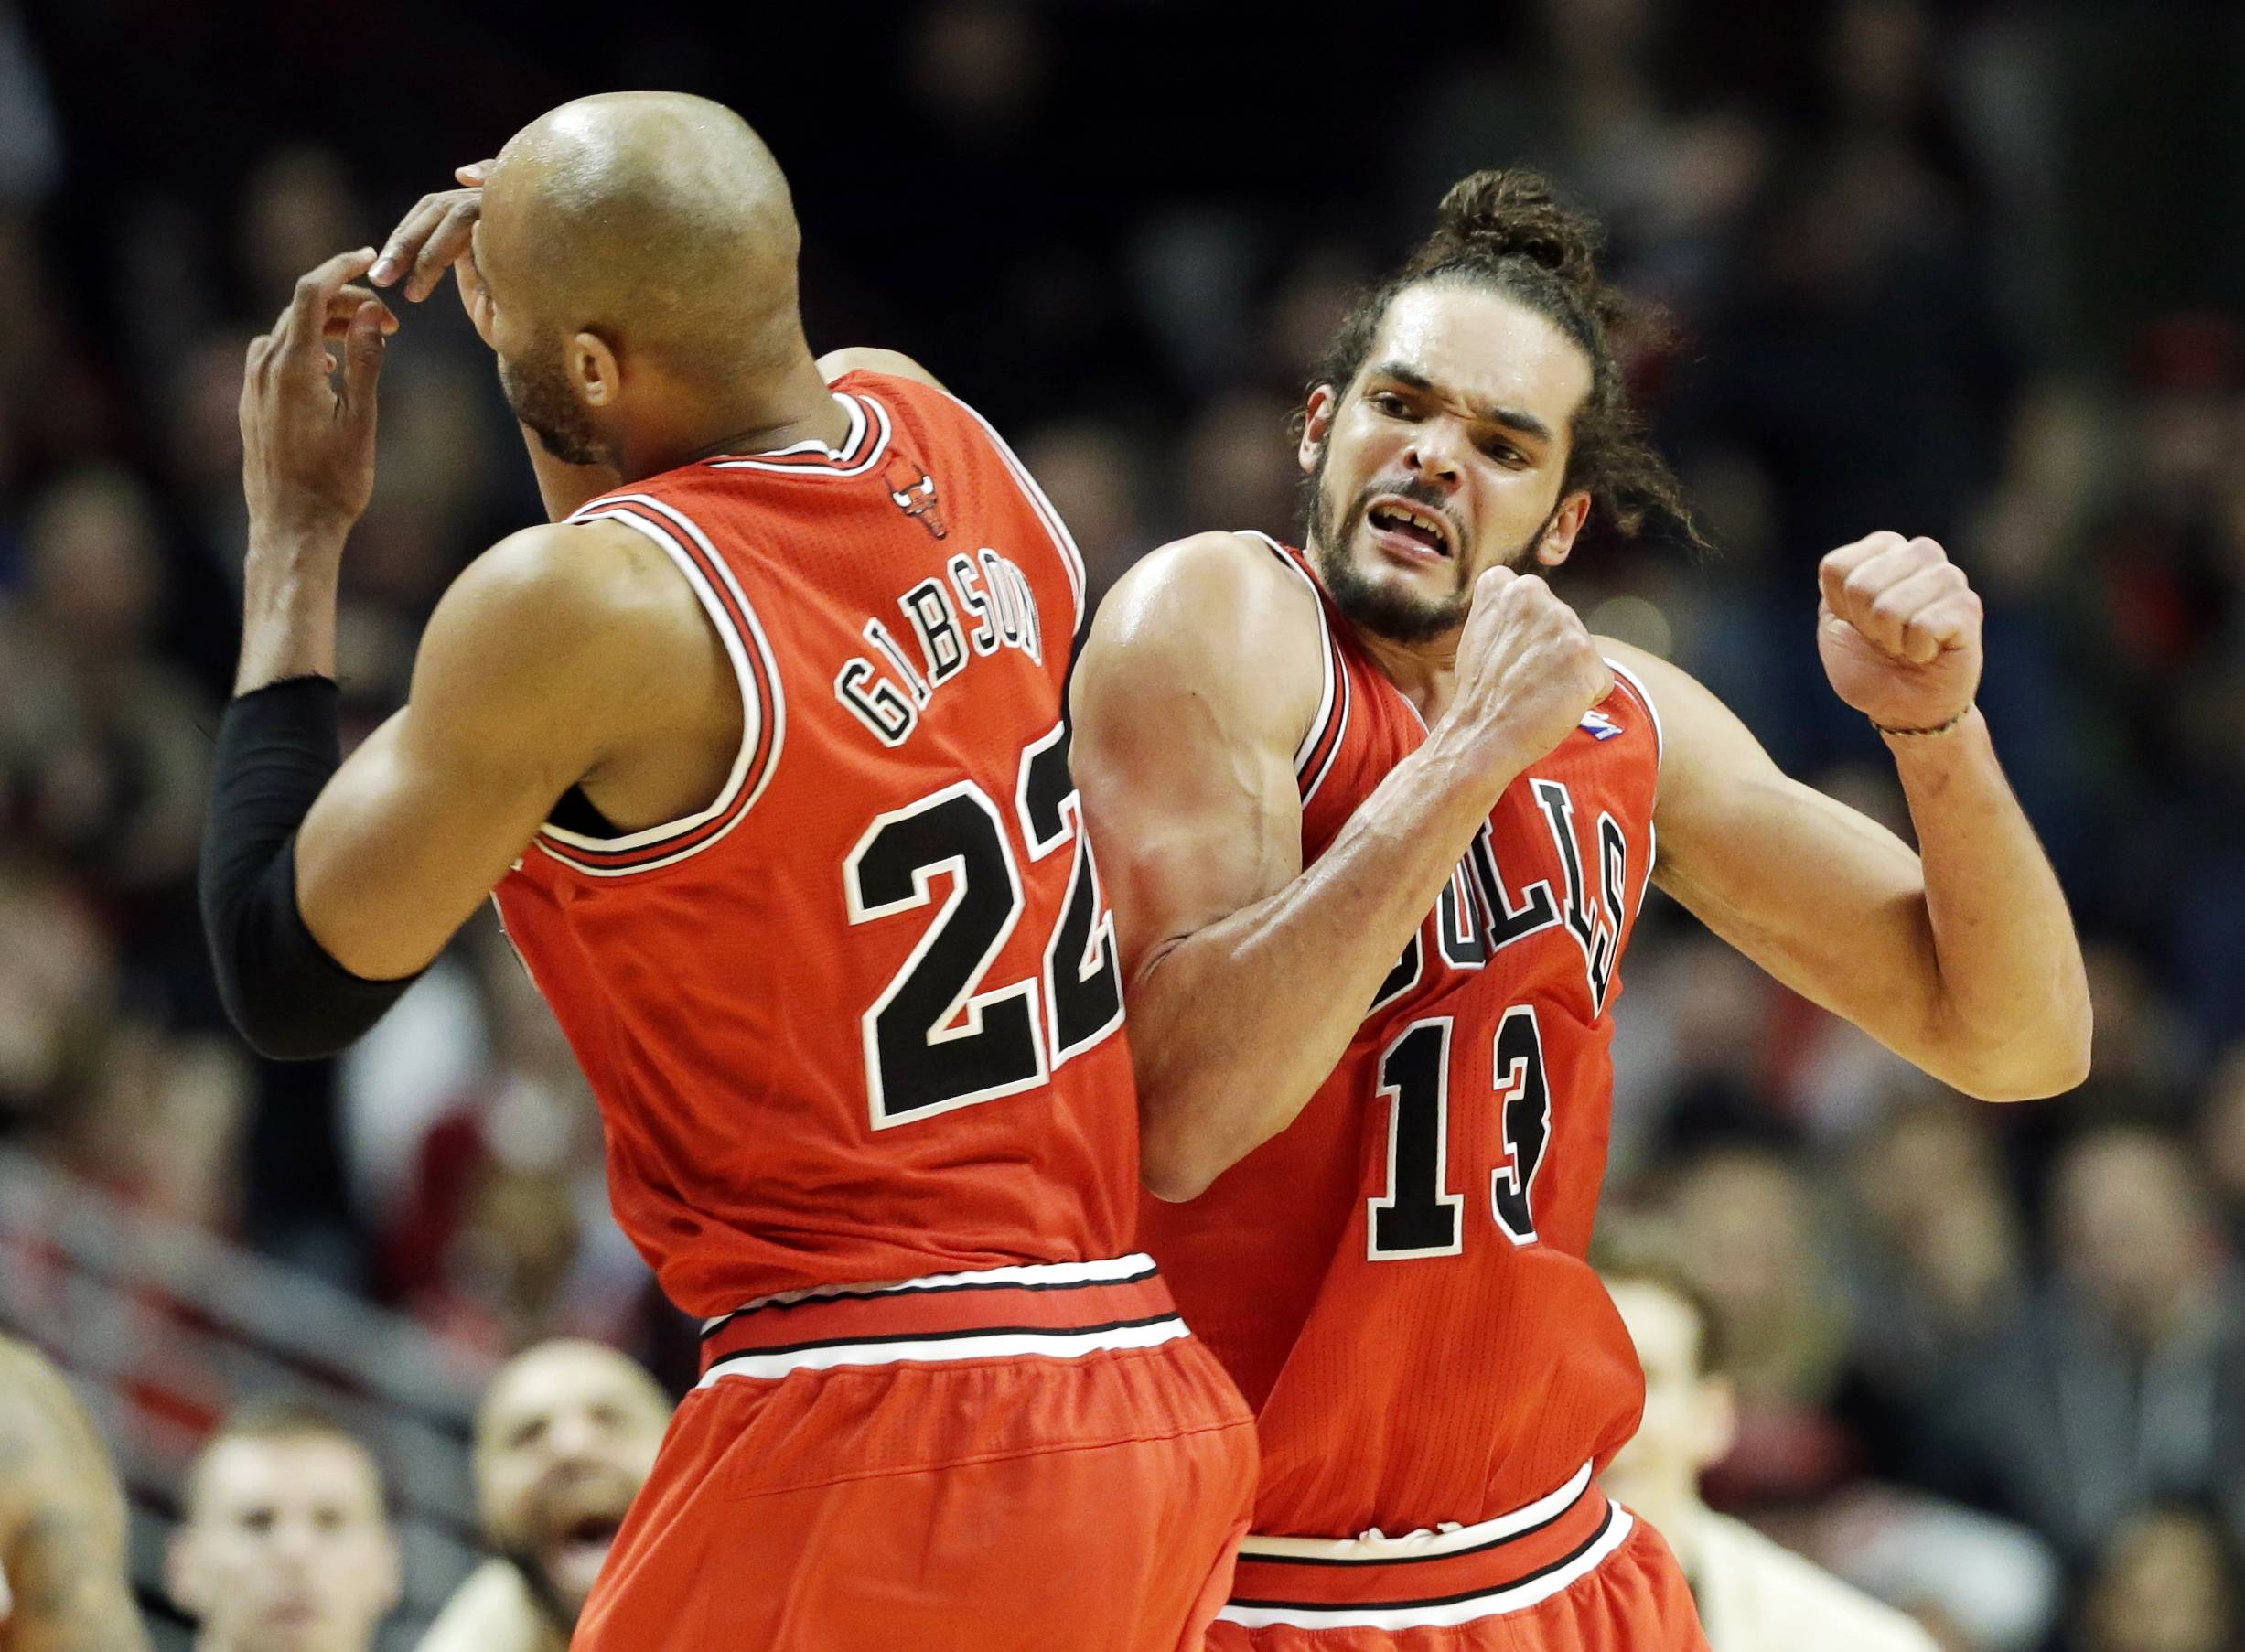 Chicago Bulls center Joakim Noah, right, celebrates with Taj Gibson after Gibson scored a basket during the second half of a game against the Brooklyn Nets Thursday night at the United Center. The Bulls won 92-76.